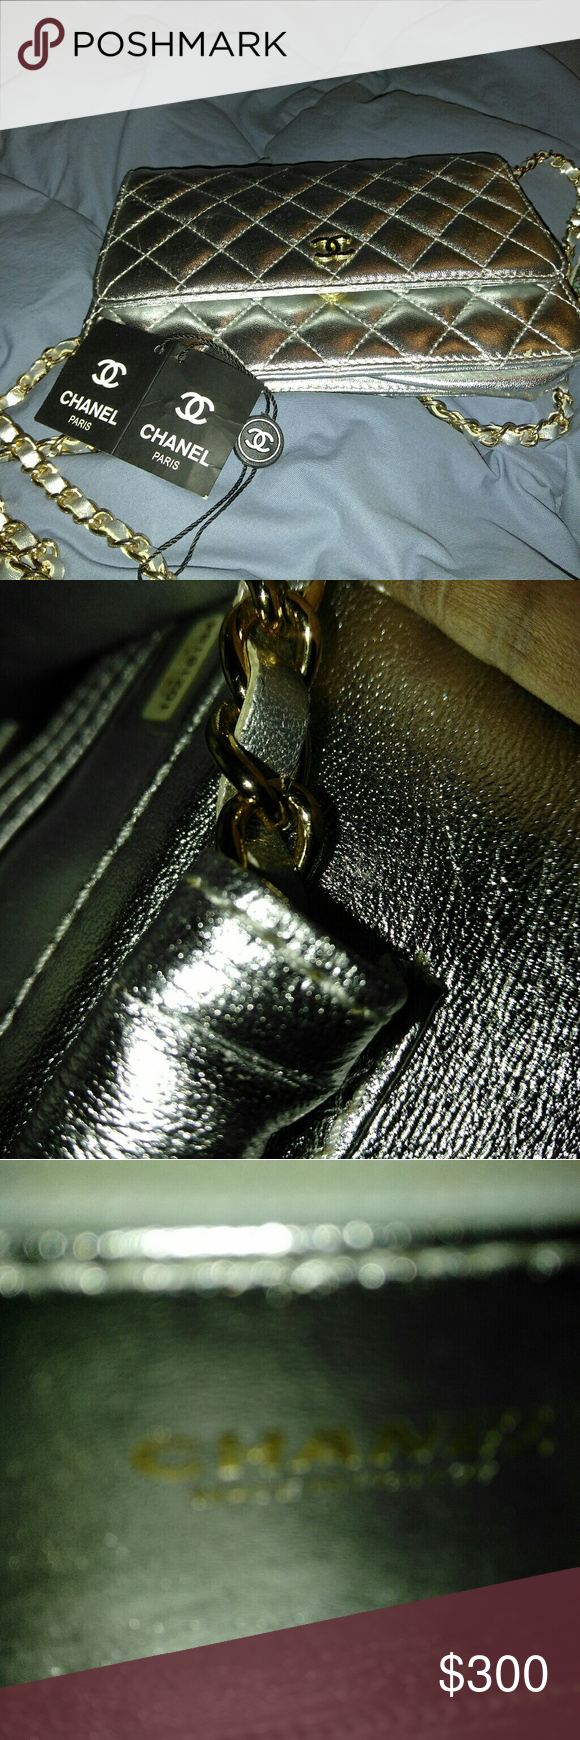 e20b437f1d37 Chanel evening bag NWOT, EVENING BAG, 10218184, just simply awesome Chanel  like Bags Crossbody Bags